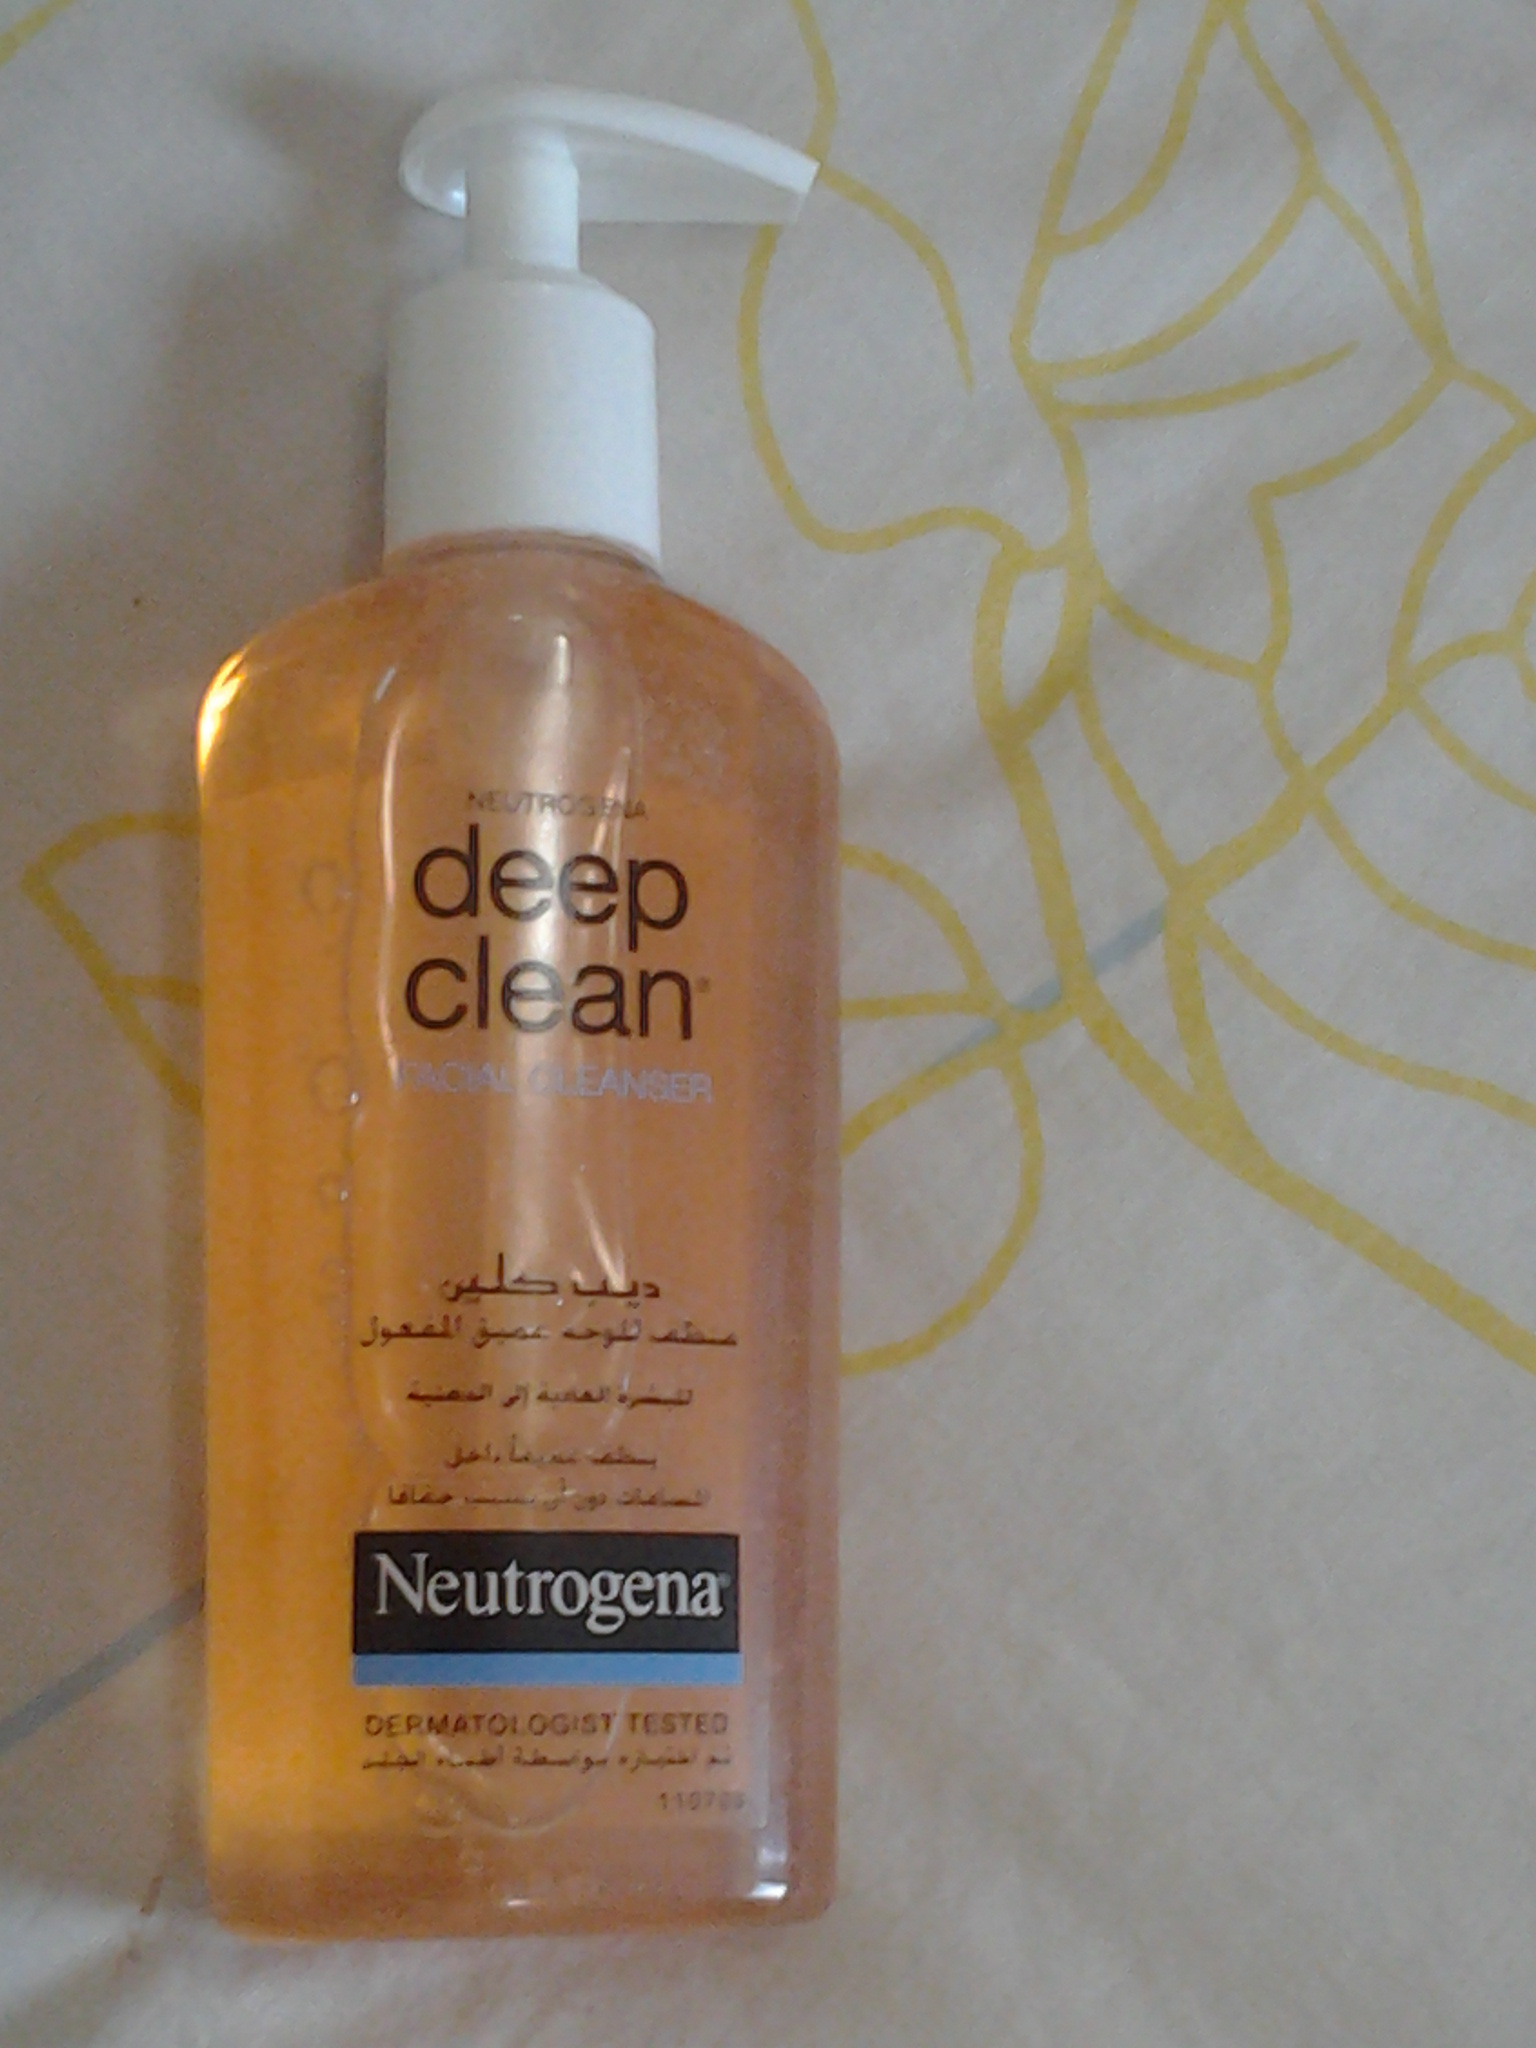 fab-review-Deep clean.-By simmi_haswani-5